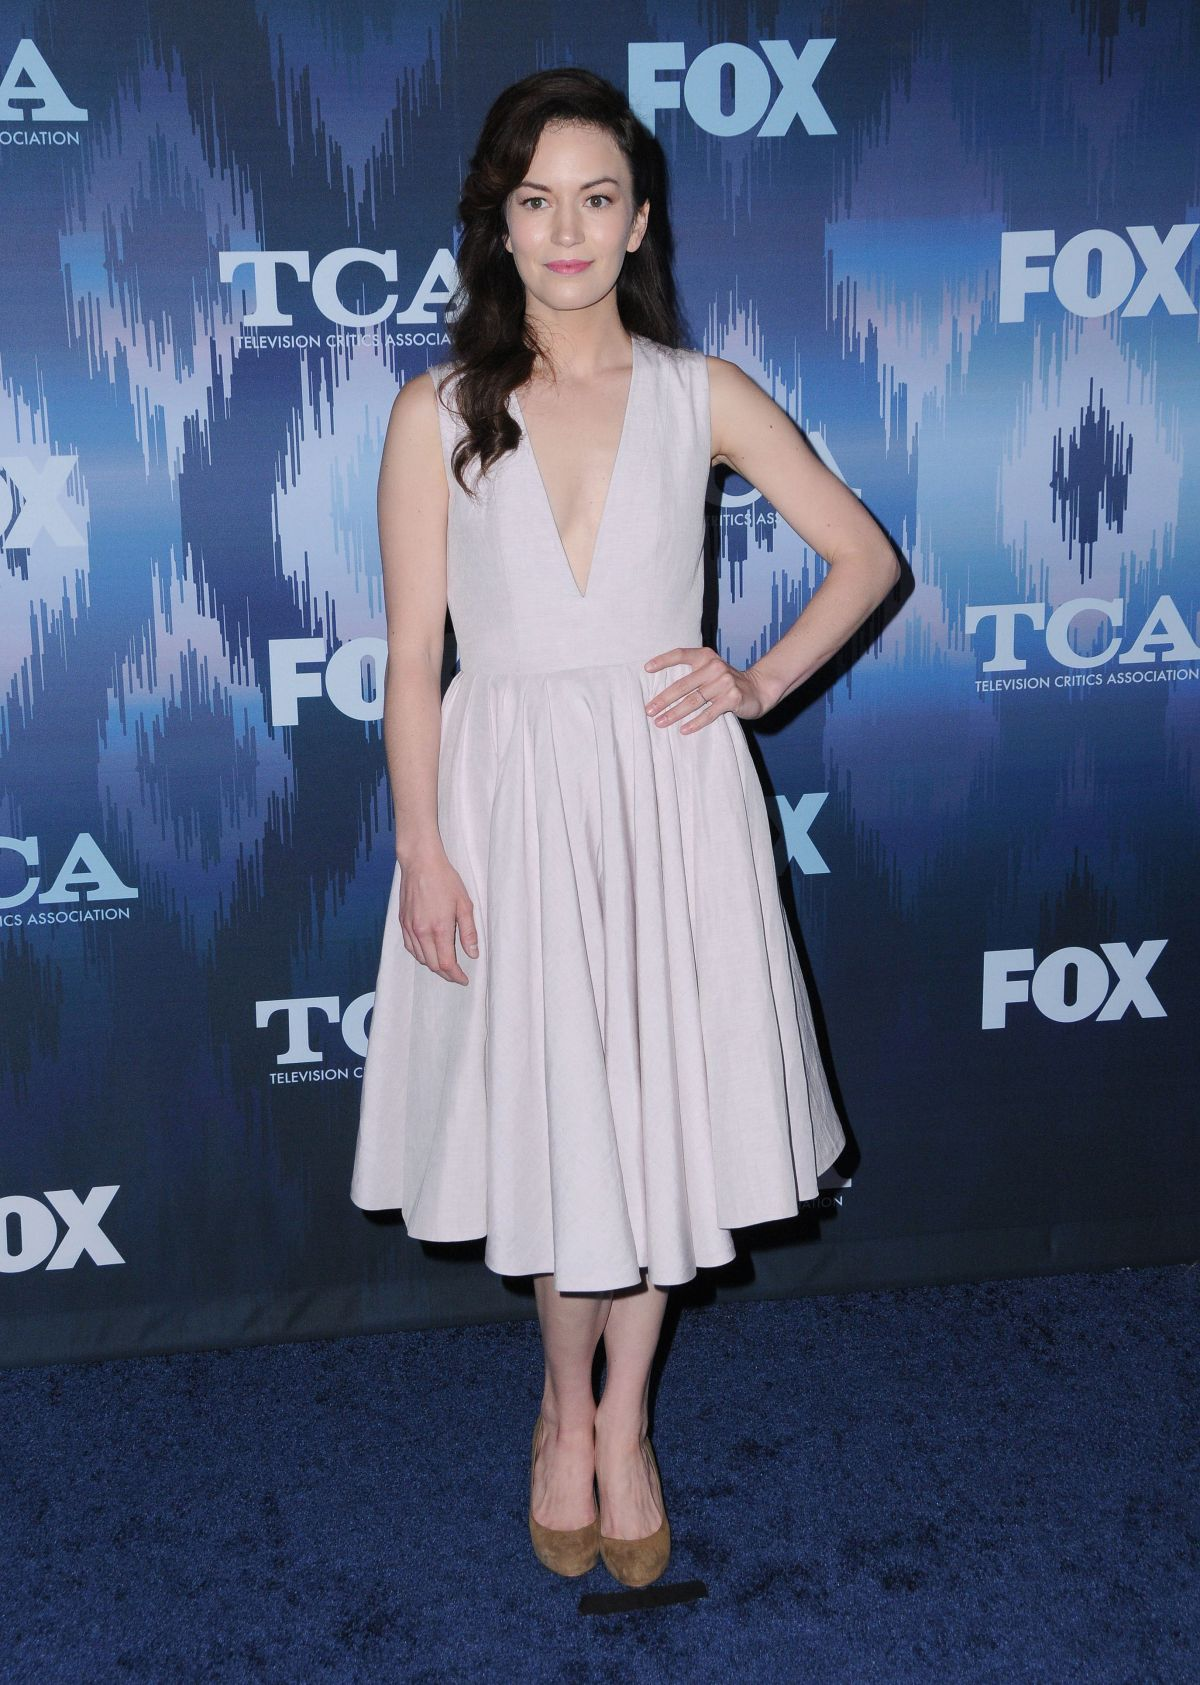 BRITT LOWER at Fox All-star Party at 2017 Winter TCA Tour in Pasadena 01/11/2017